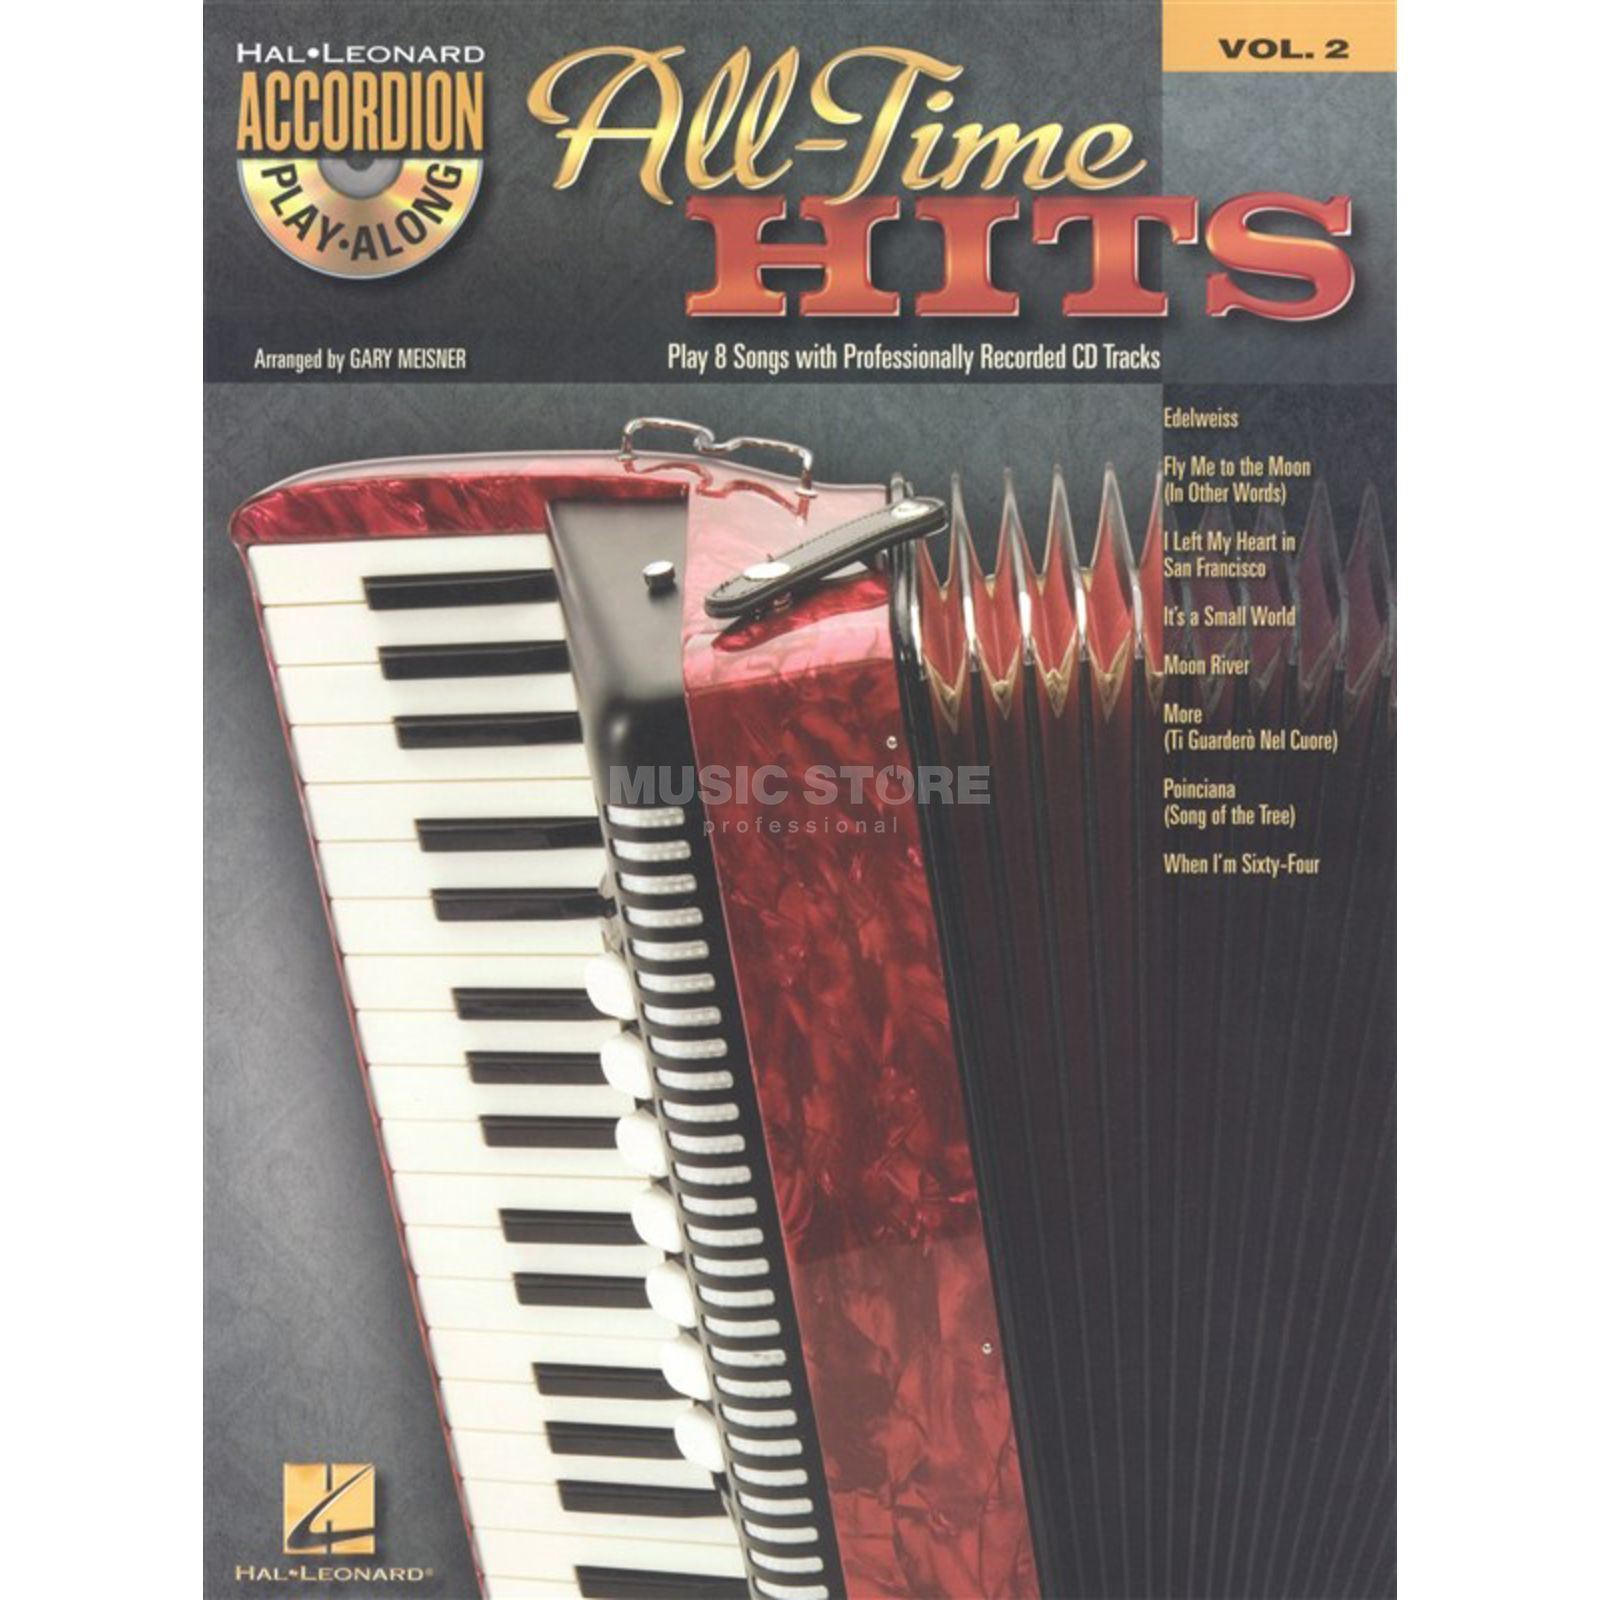 Hal Leonard Accordion Play-Along: All-Time Hits Vol.2, CD Produktbild